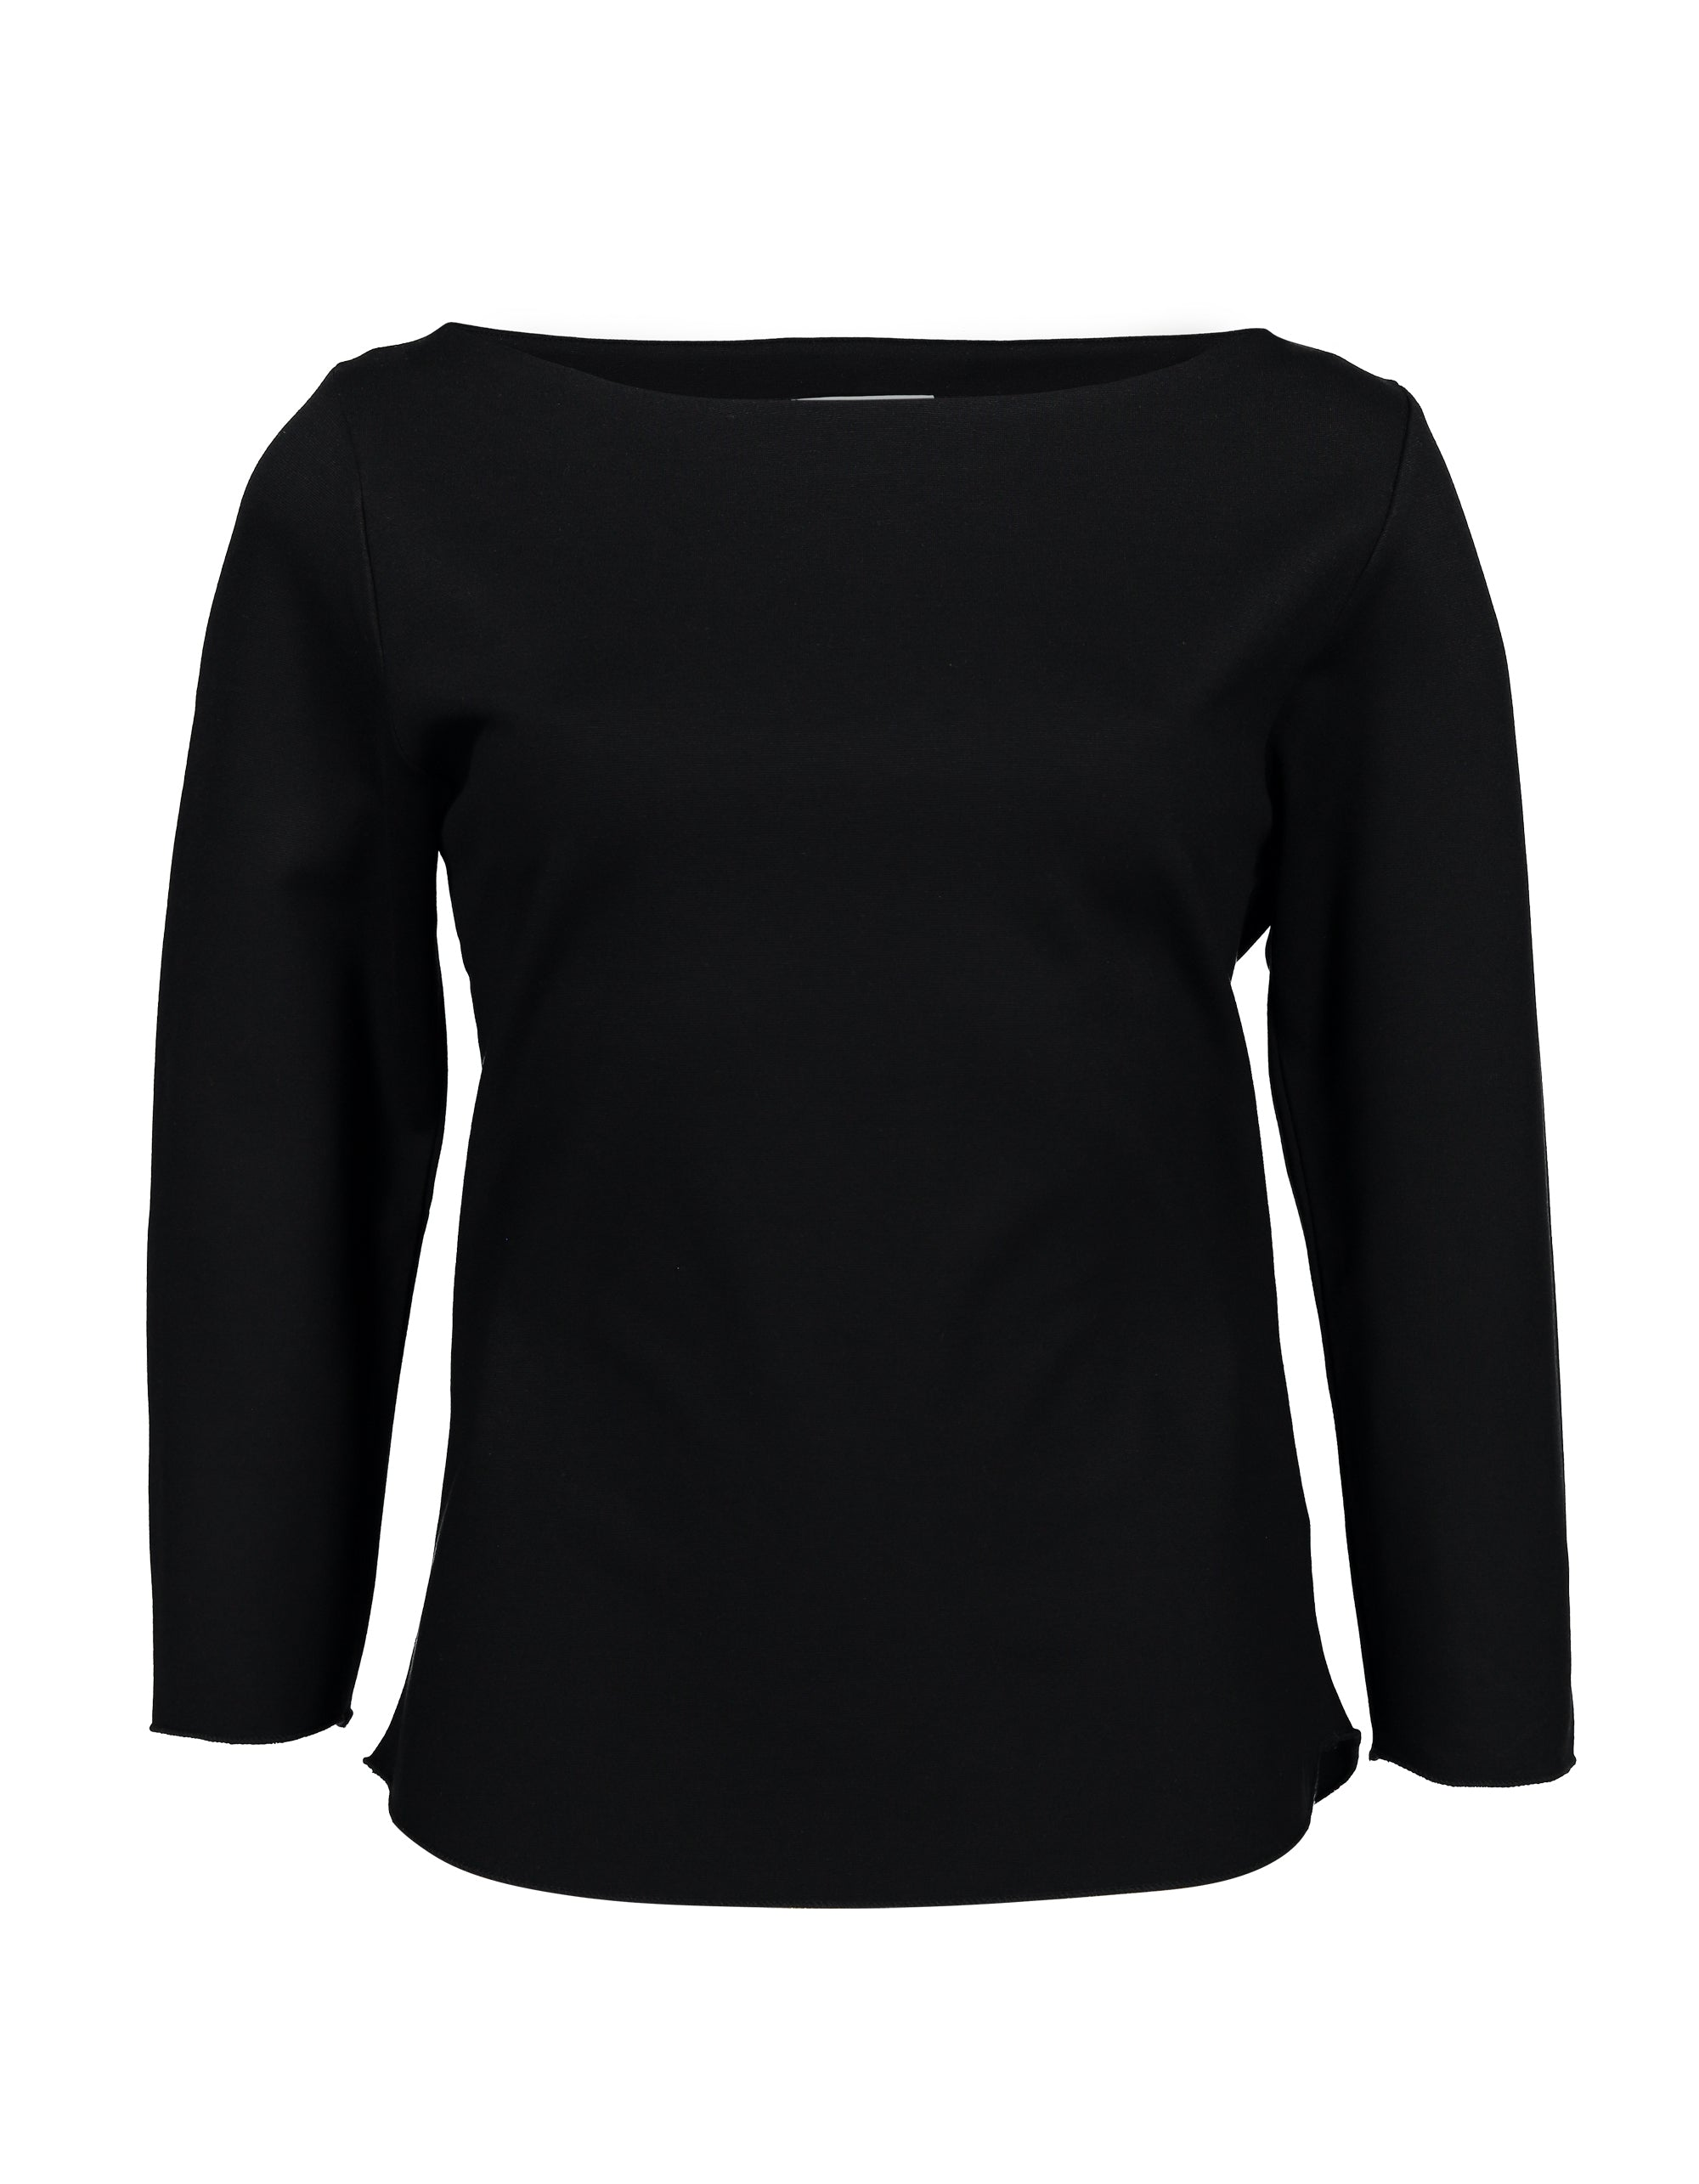 Boat Neck Long Sleeve | Black | Tops | Baseville | [product_tag] - Fair Bazaar Ethical Living